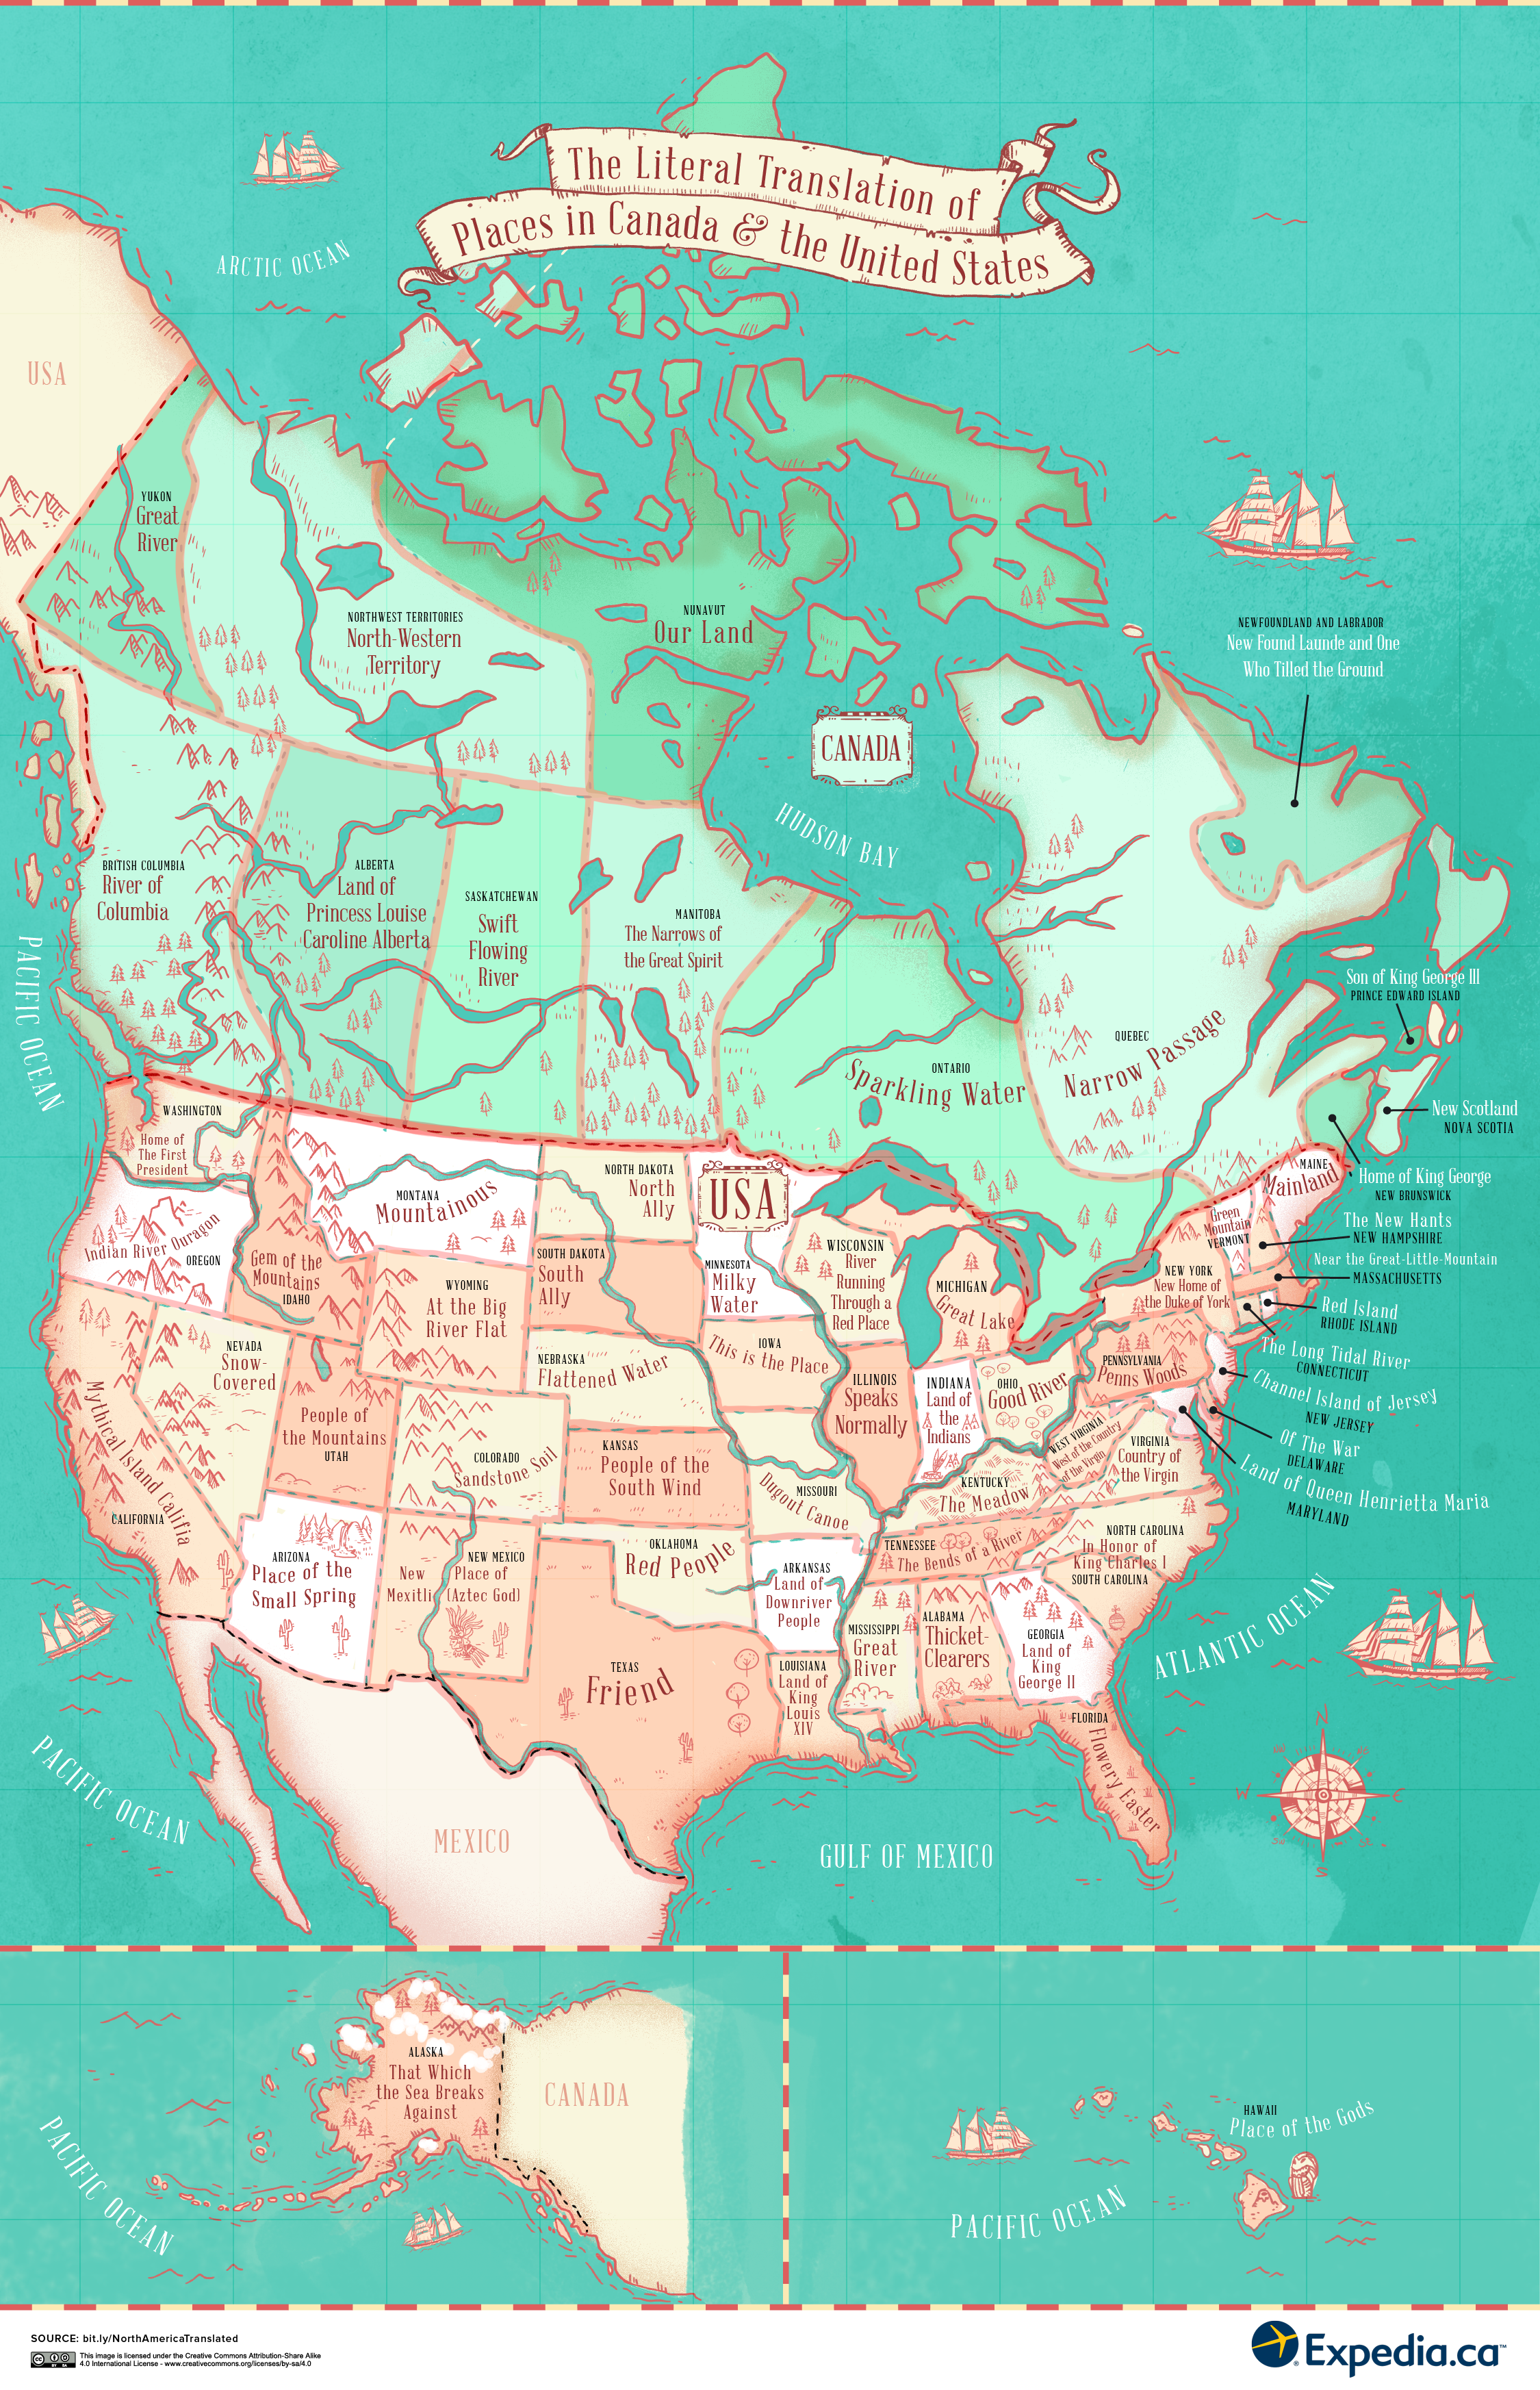 The literal translation of places in the United States and Canada